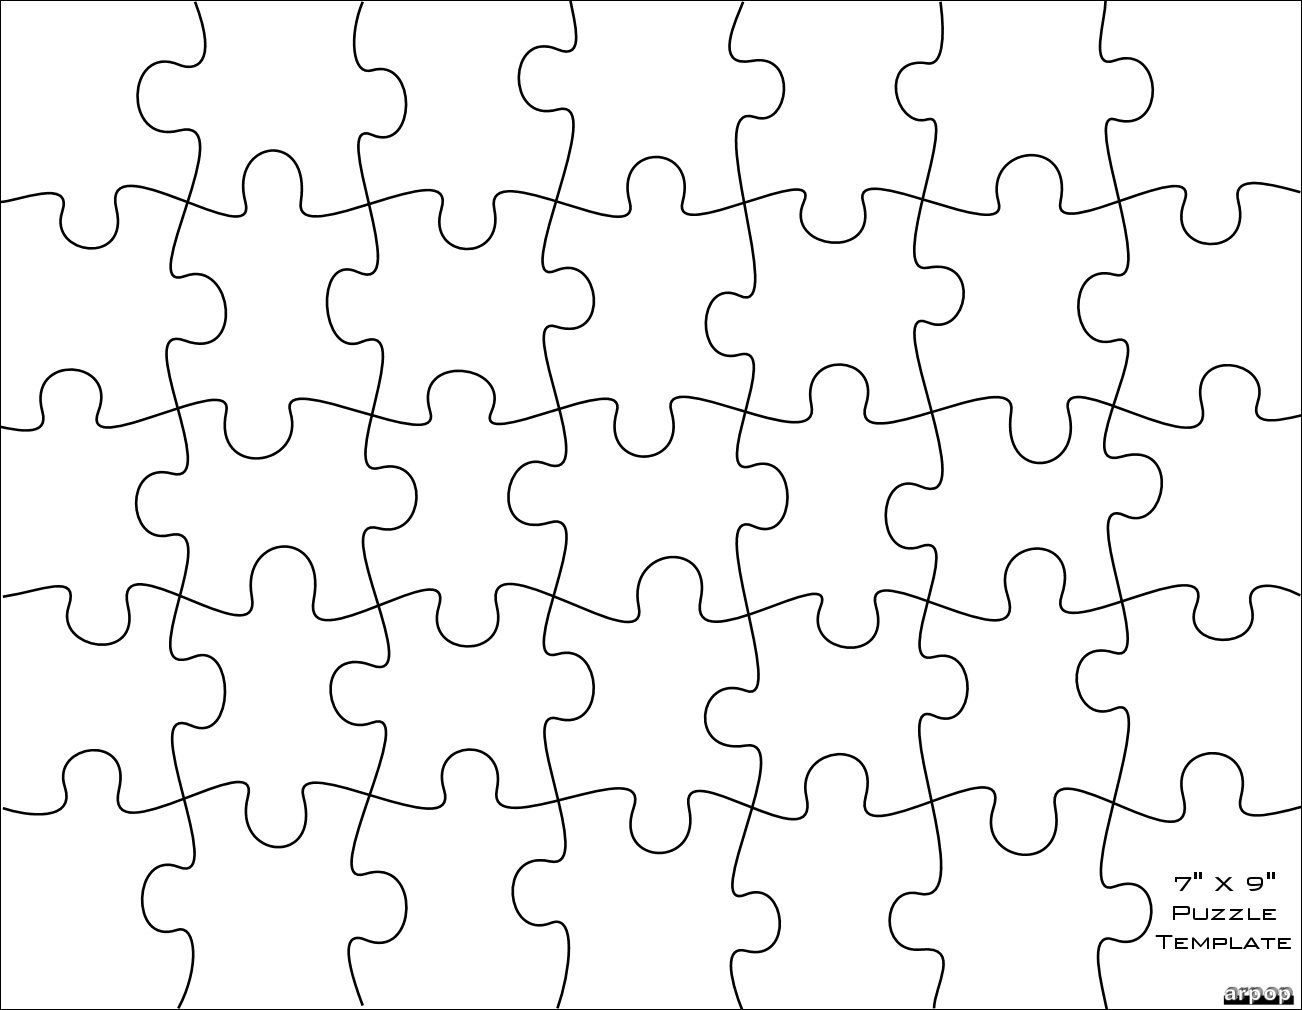 Jigsaw Puzzle Template For Word - Atlantaauctionco Throughout Jigsaw Puzzle Template For Word